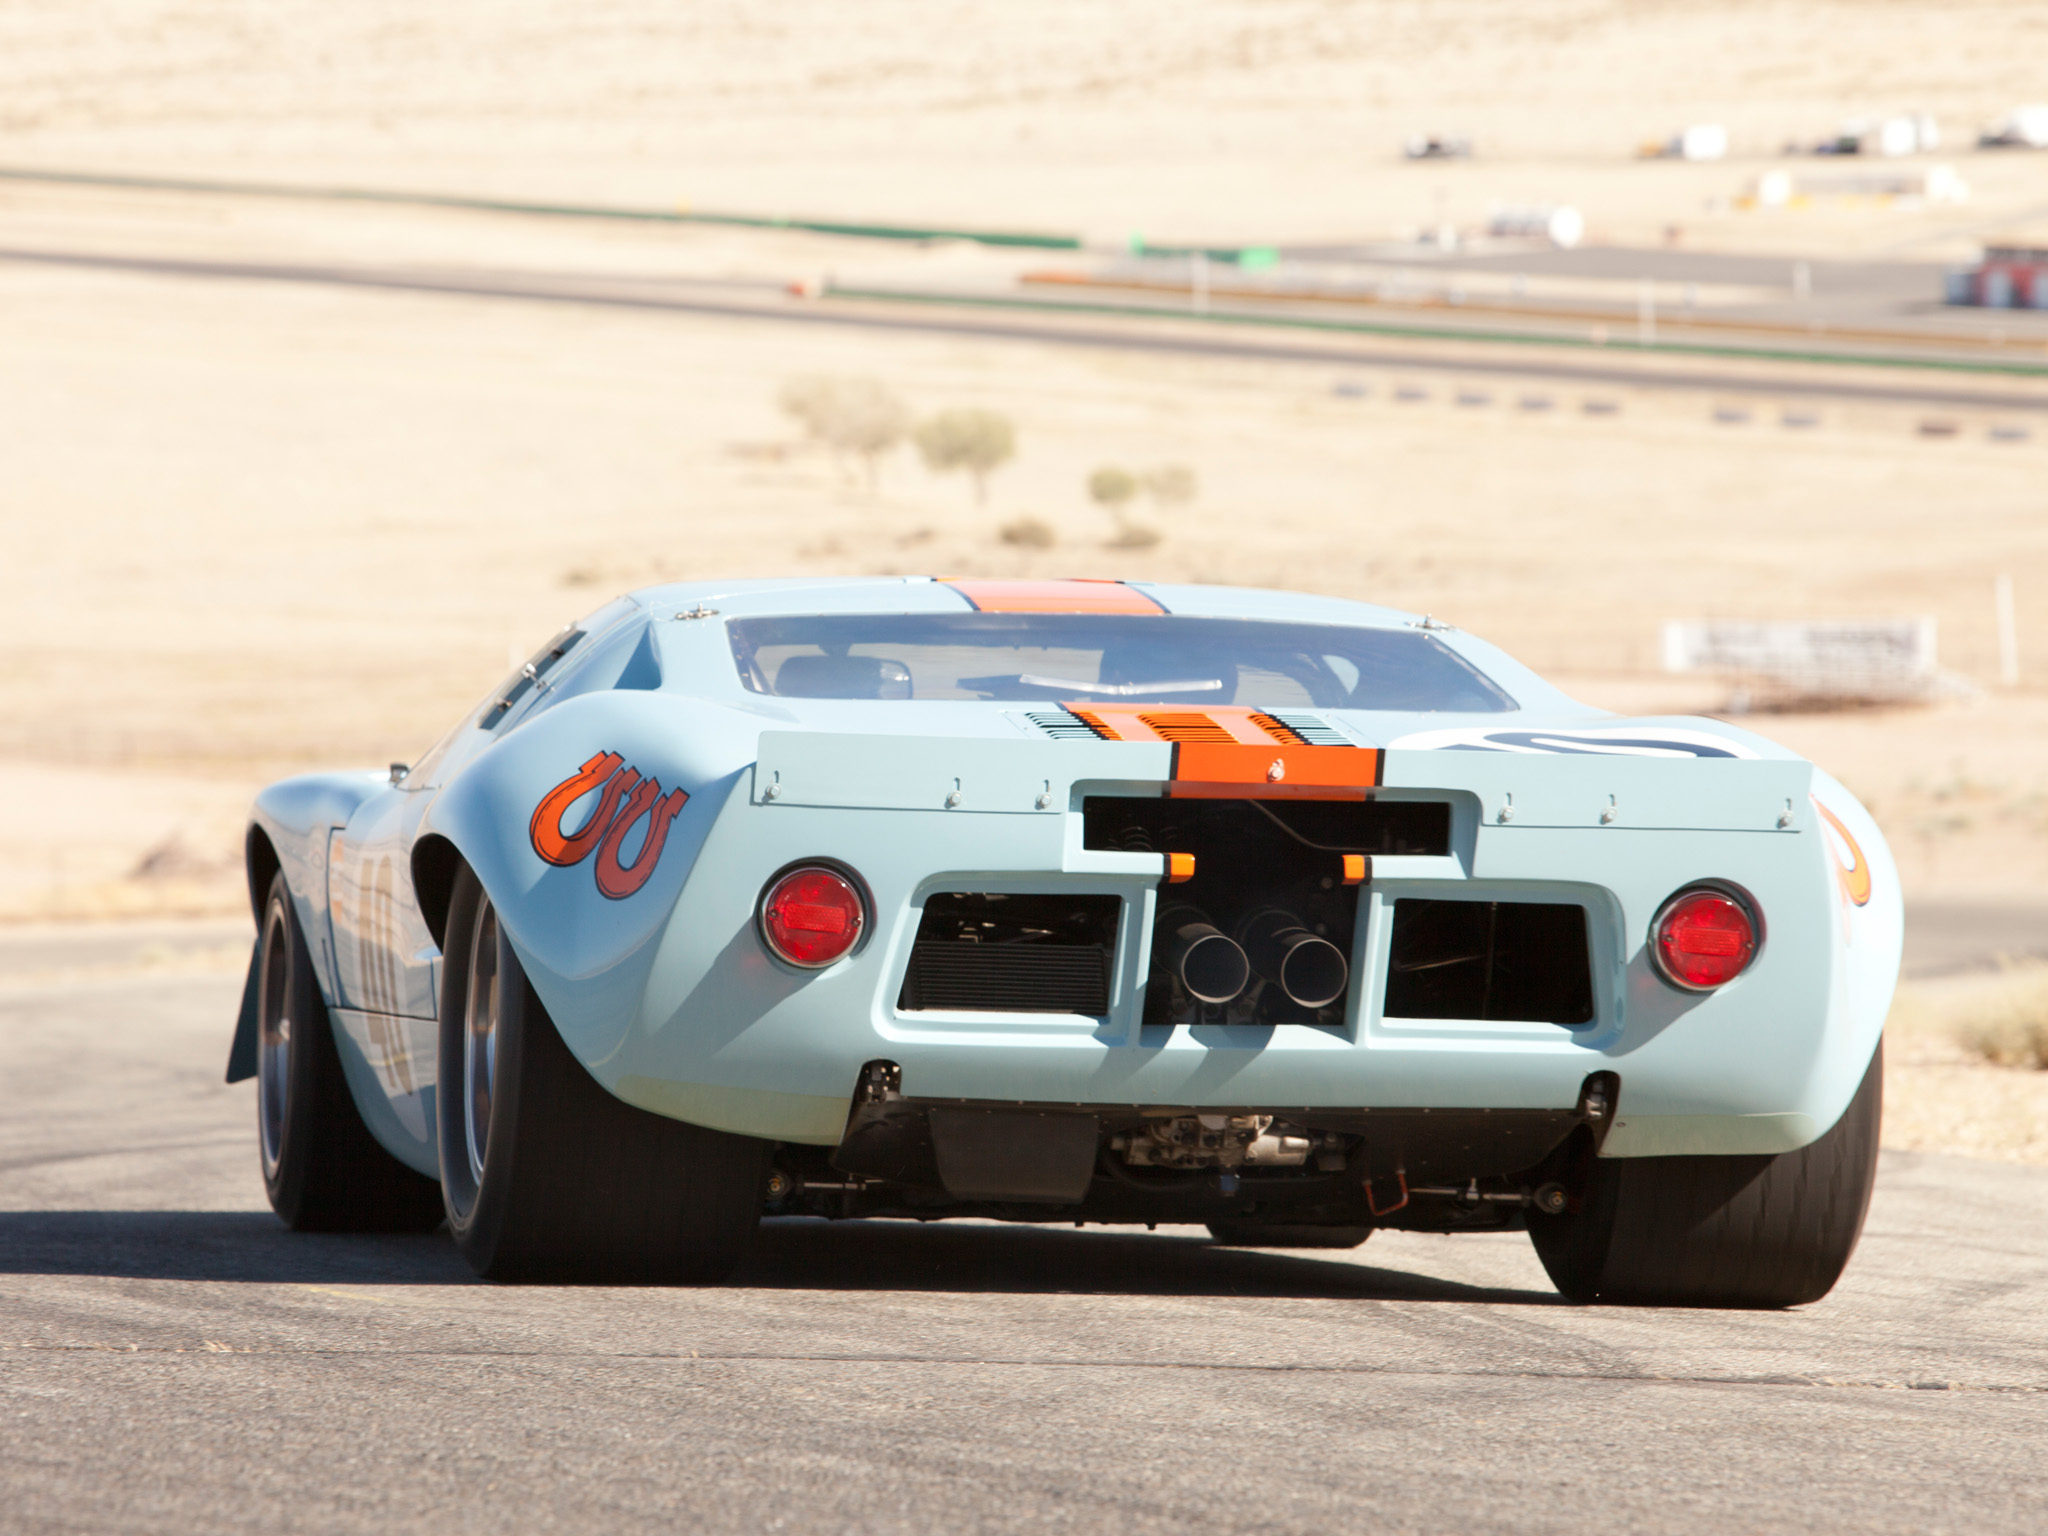 1968 ford gt40 gulf oil le mans race racing supercar. Black Bedroom Furniture Sets. Home Design Ideas